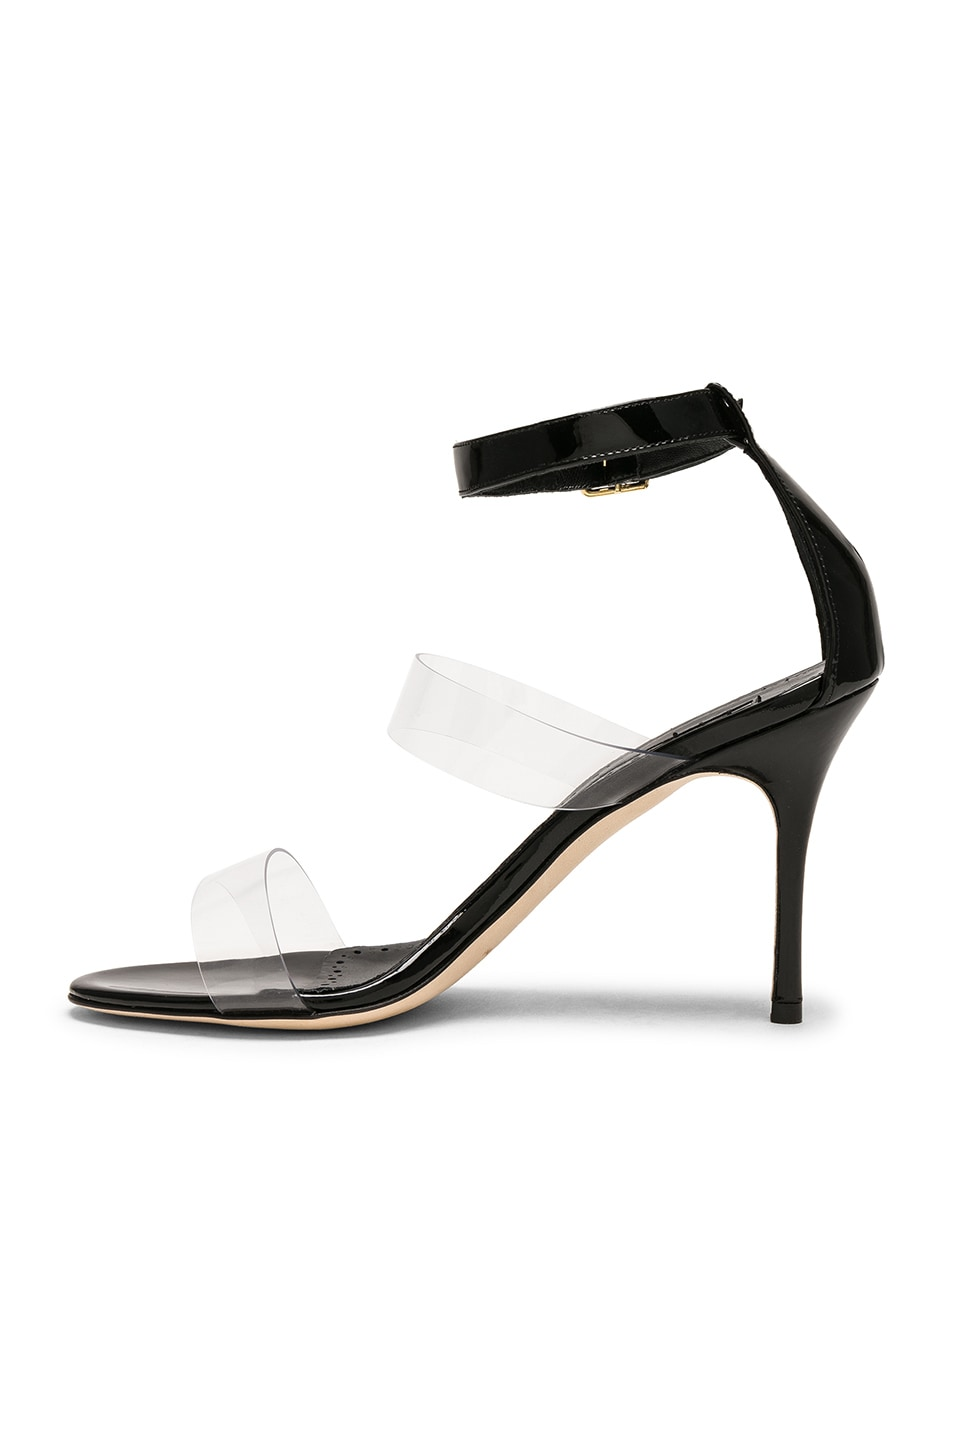 Image 5 of Manolo Blahnik Patent Leather & PVC Kaotic 90 Sandals in Black Patent & Clear PVC